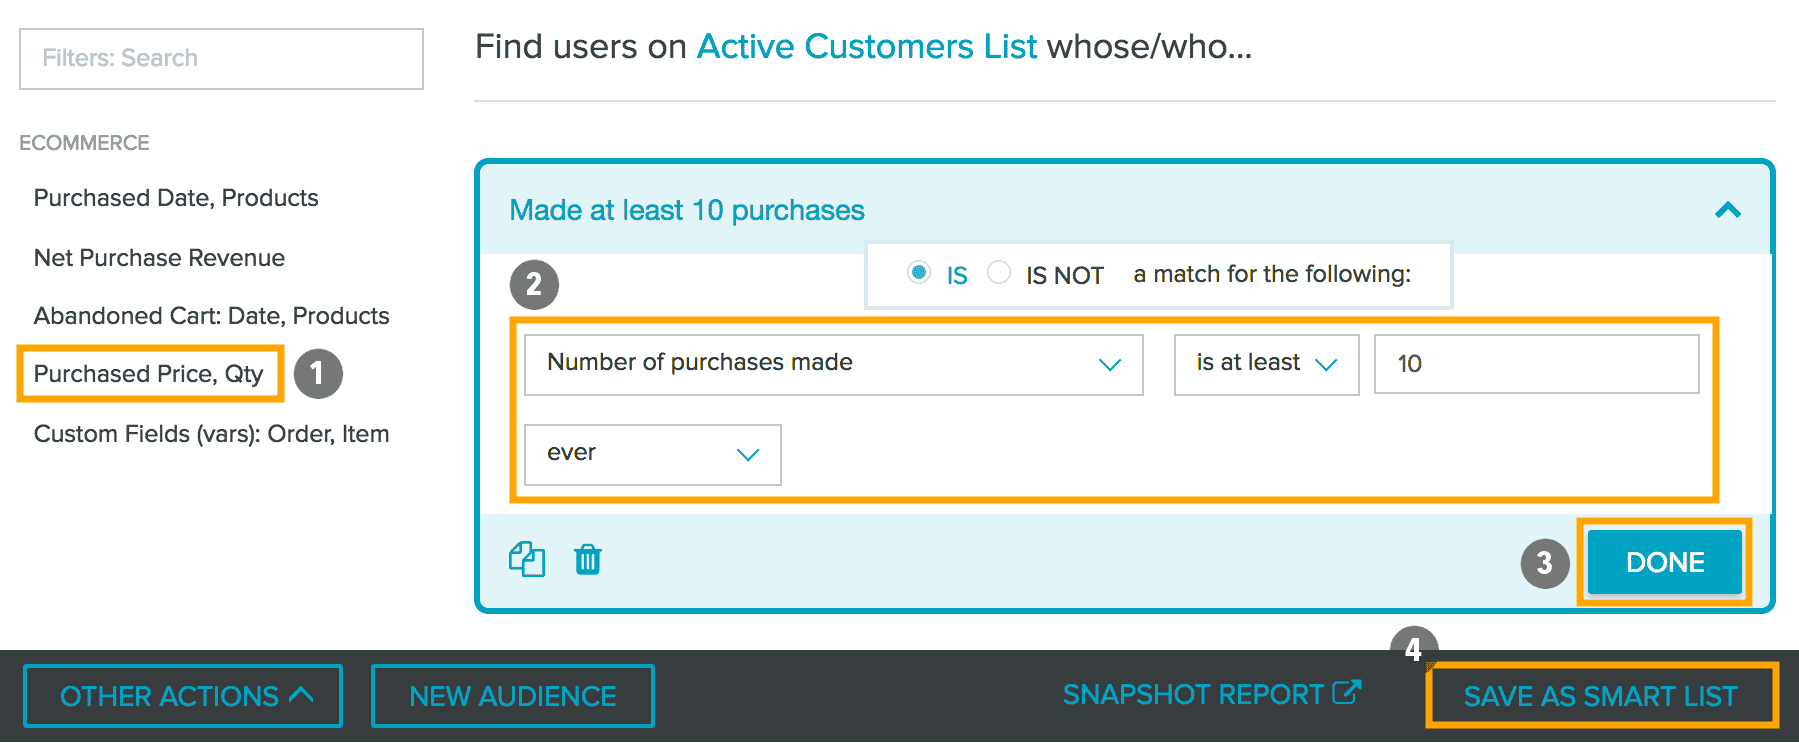 audience builder 10 purchases 4 steps